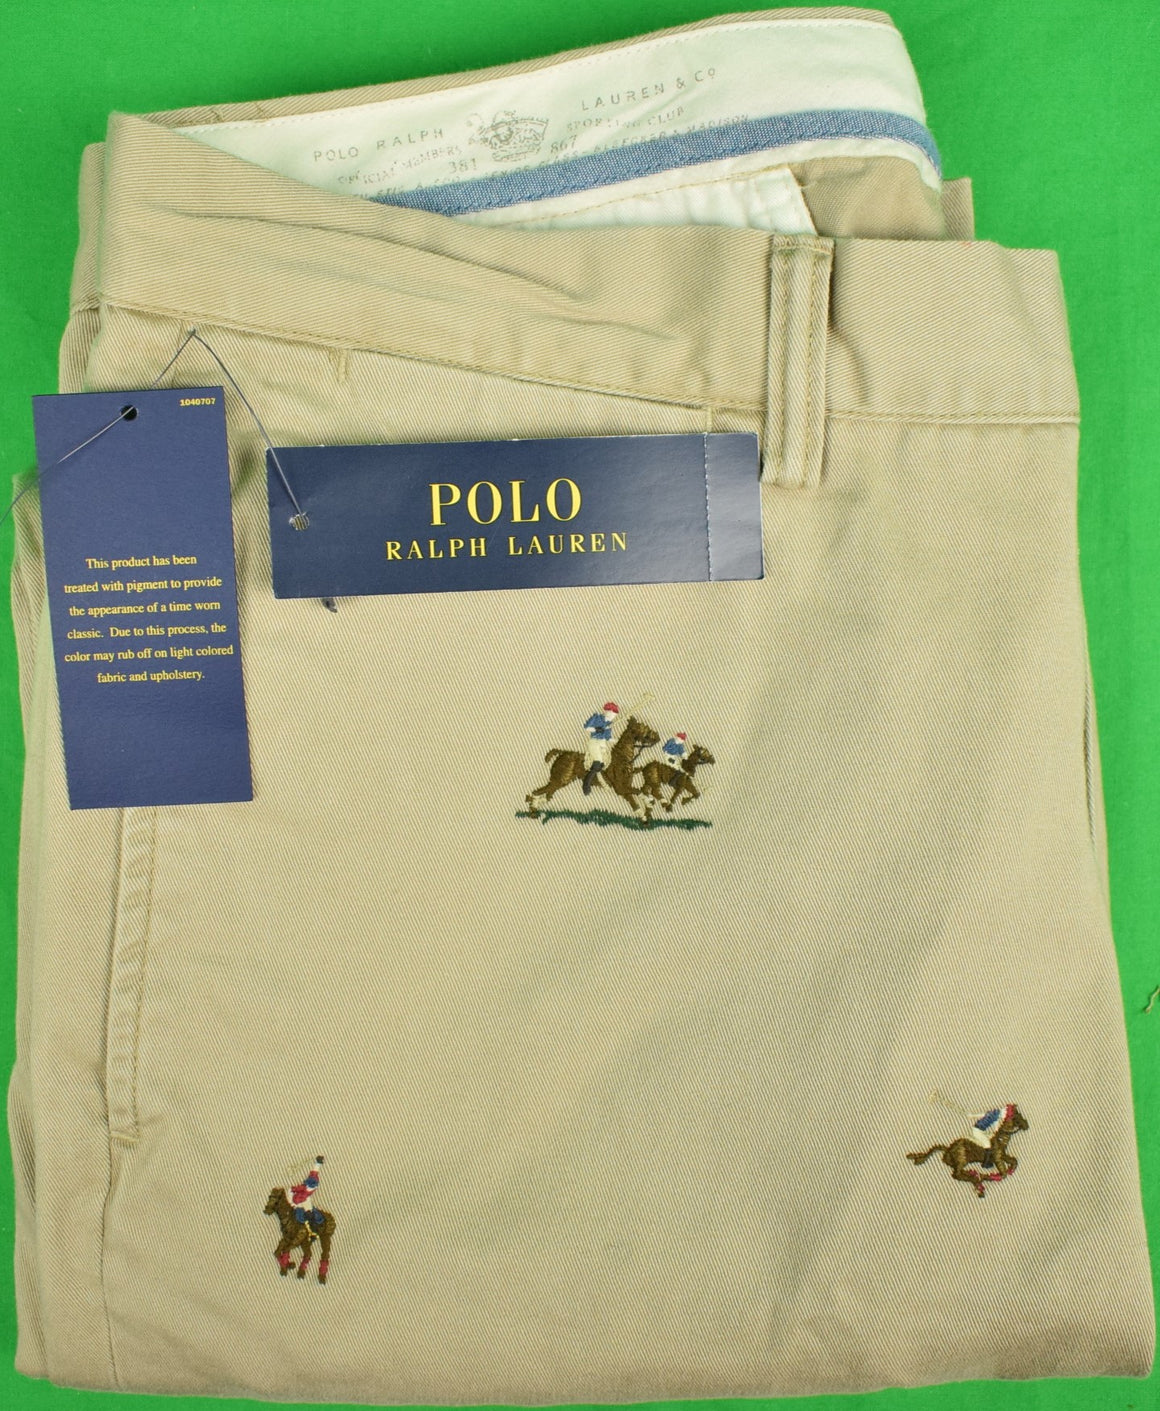 Polo Ralph Lauren Bedford Chinos w/ Embroidered Polo Players (New w/ Tags!) 32/ 32